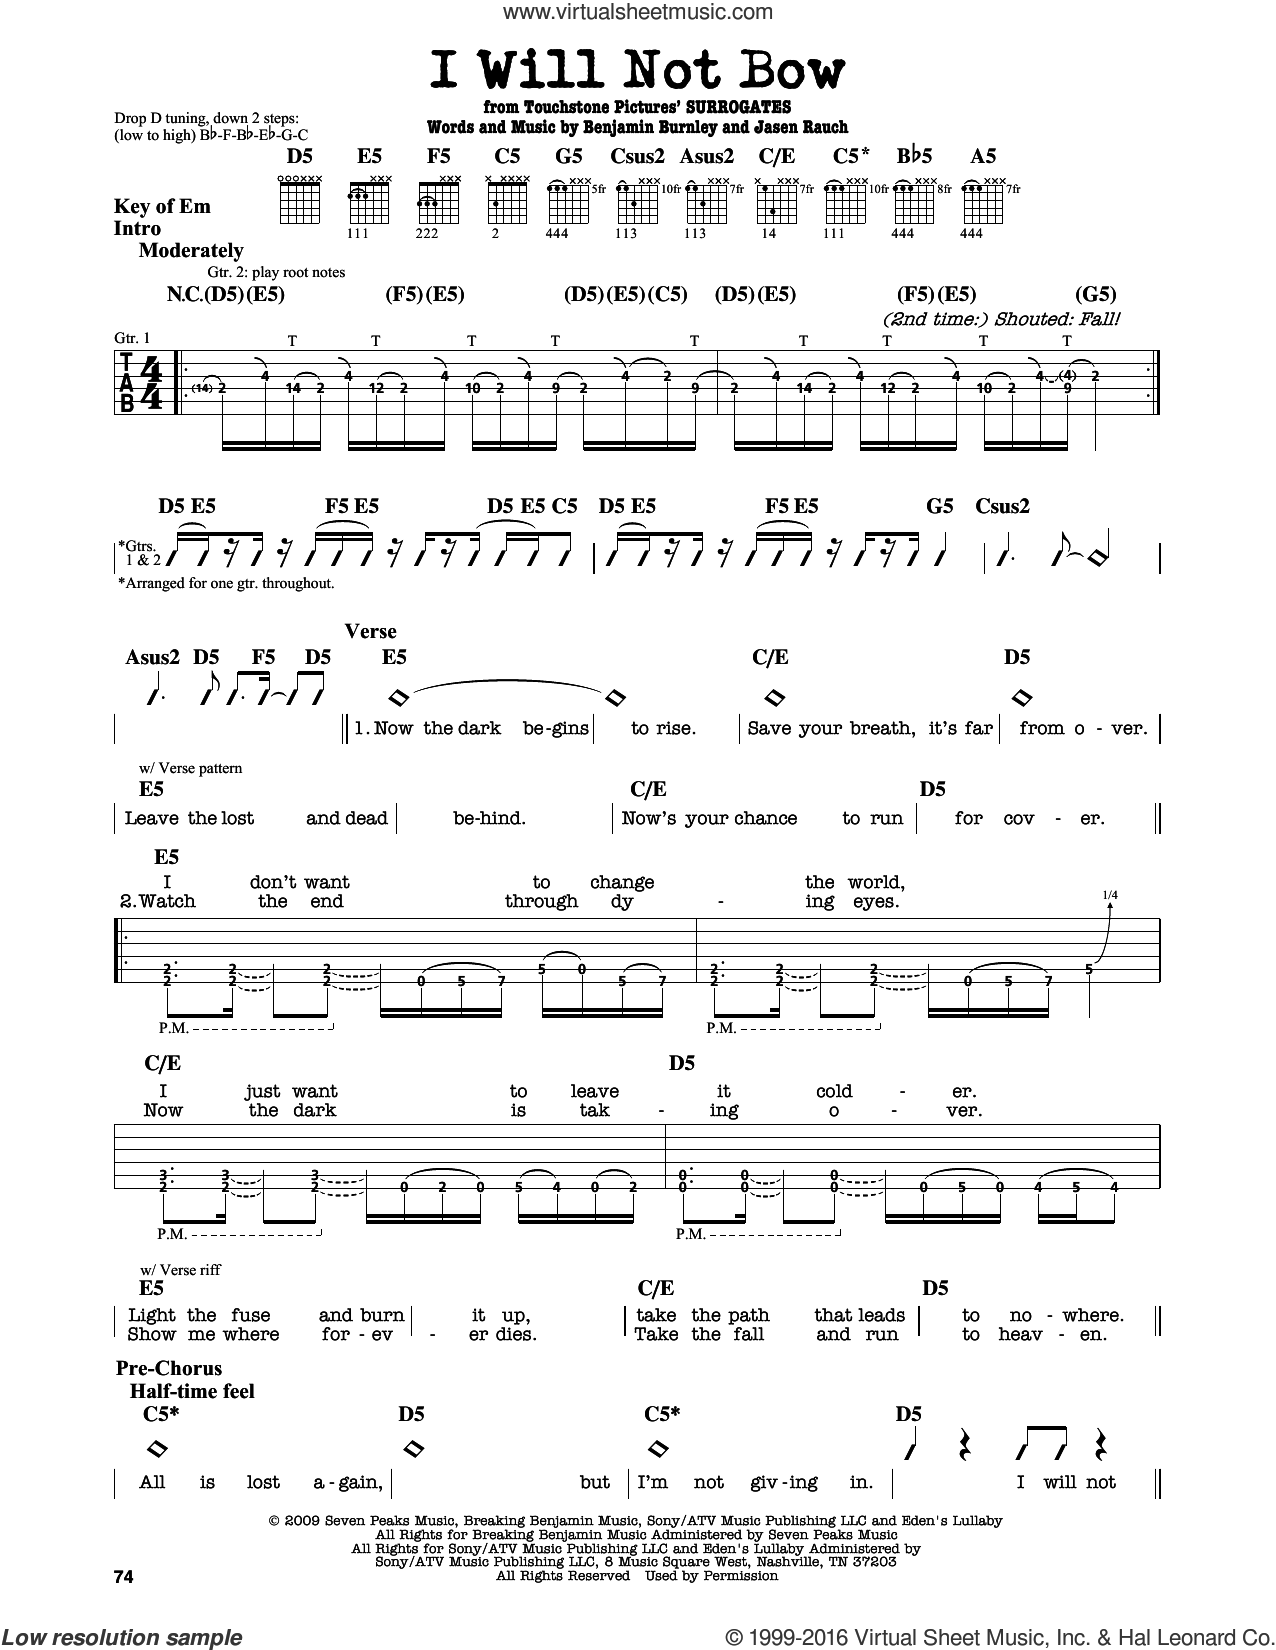 I Will Not Bow sheet music for guitar solo (lead sheet) by Jasen Rauch and Benjamin Burnley. Score Image Preview.